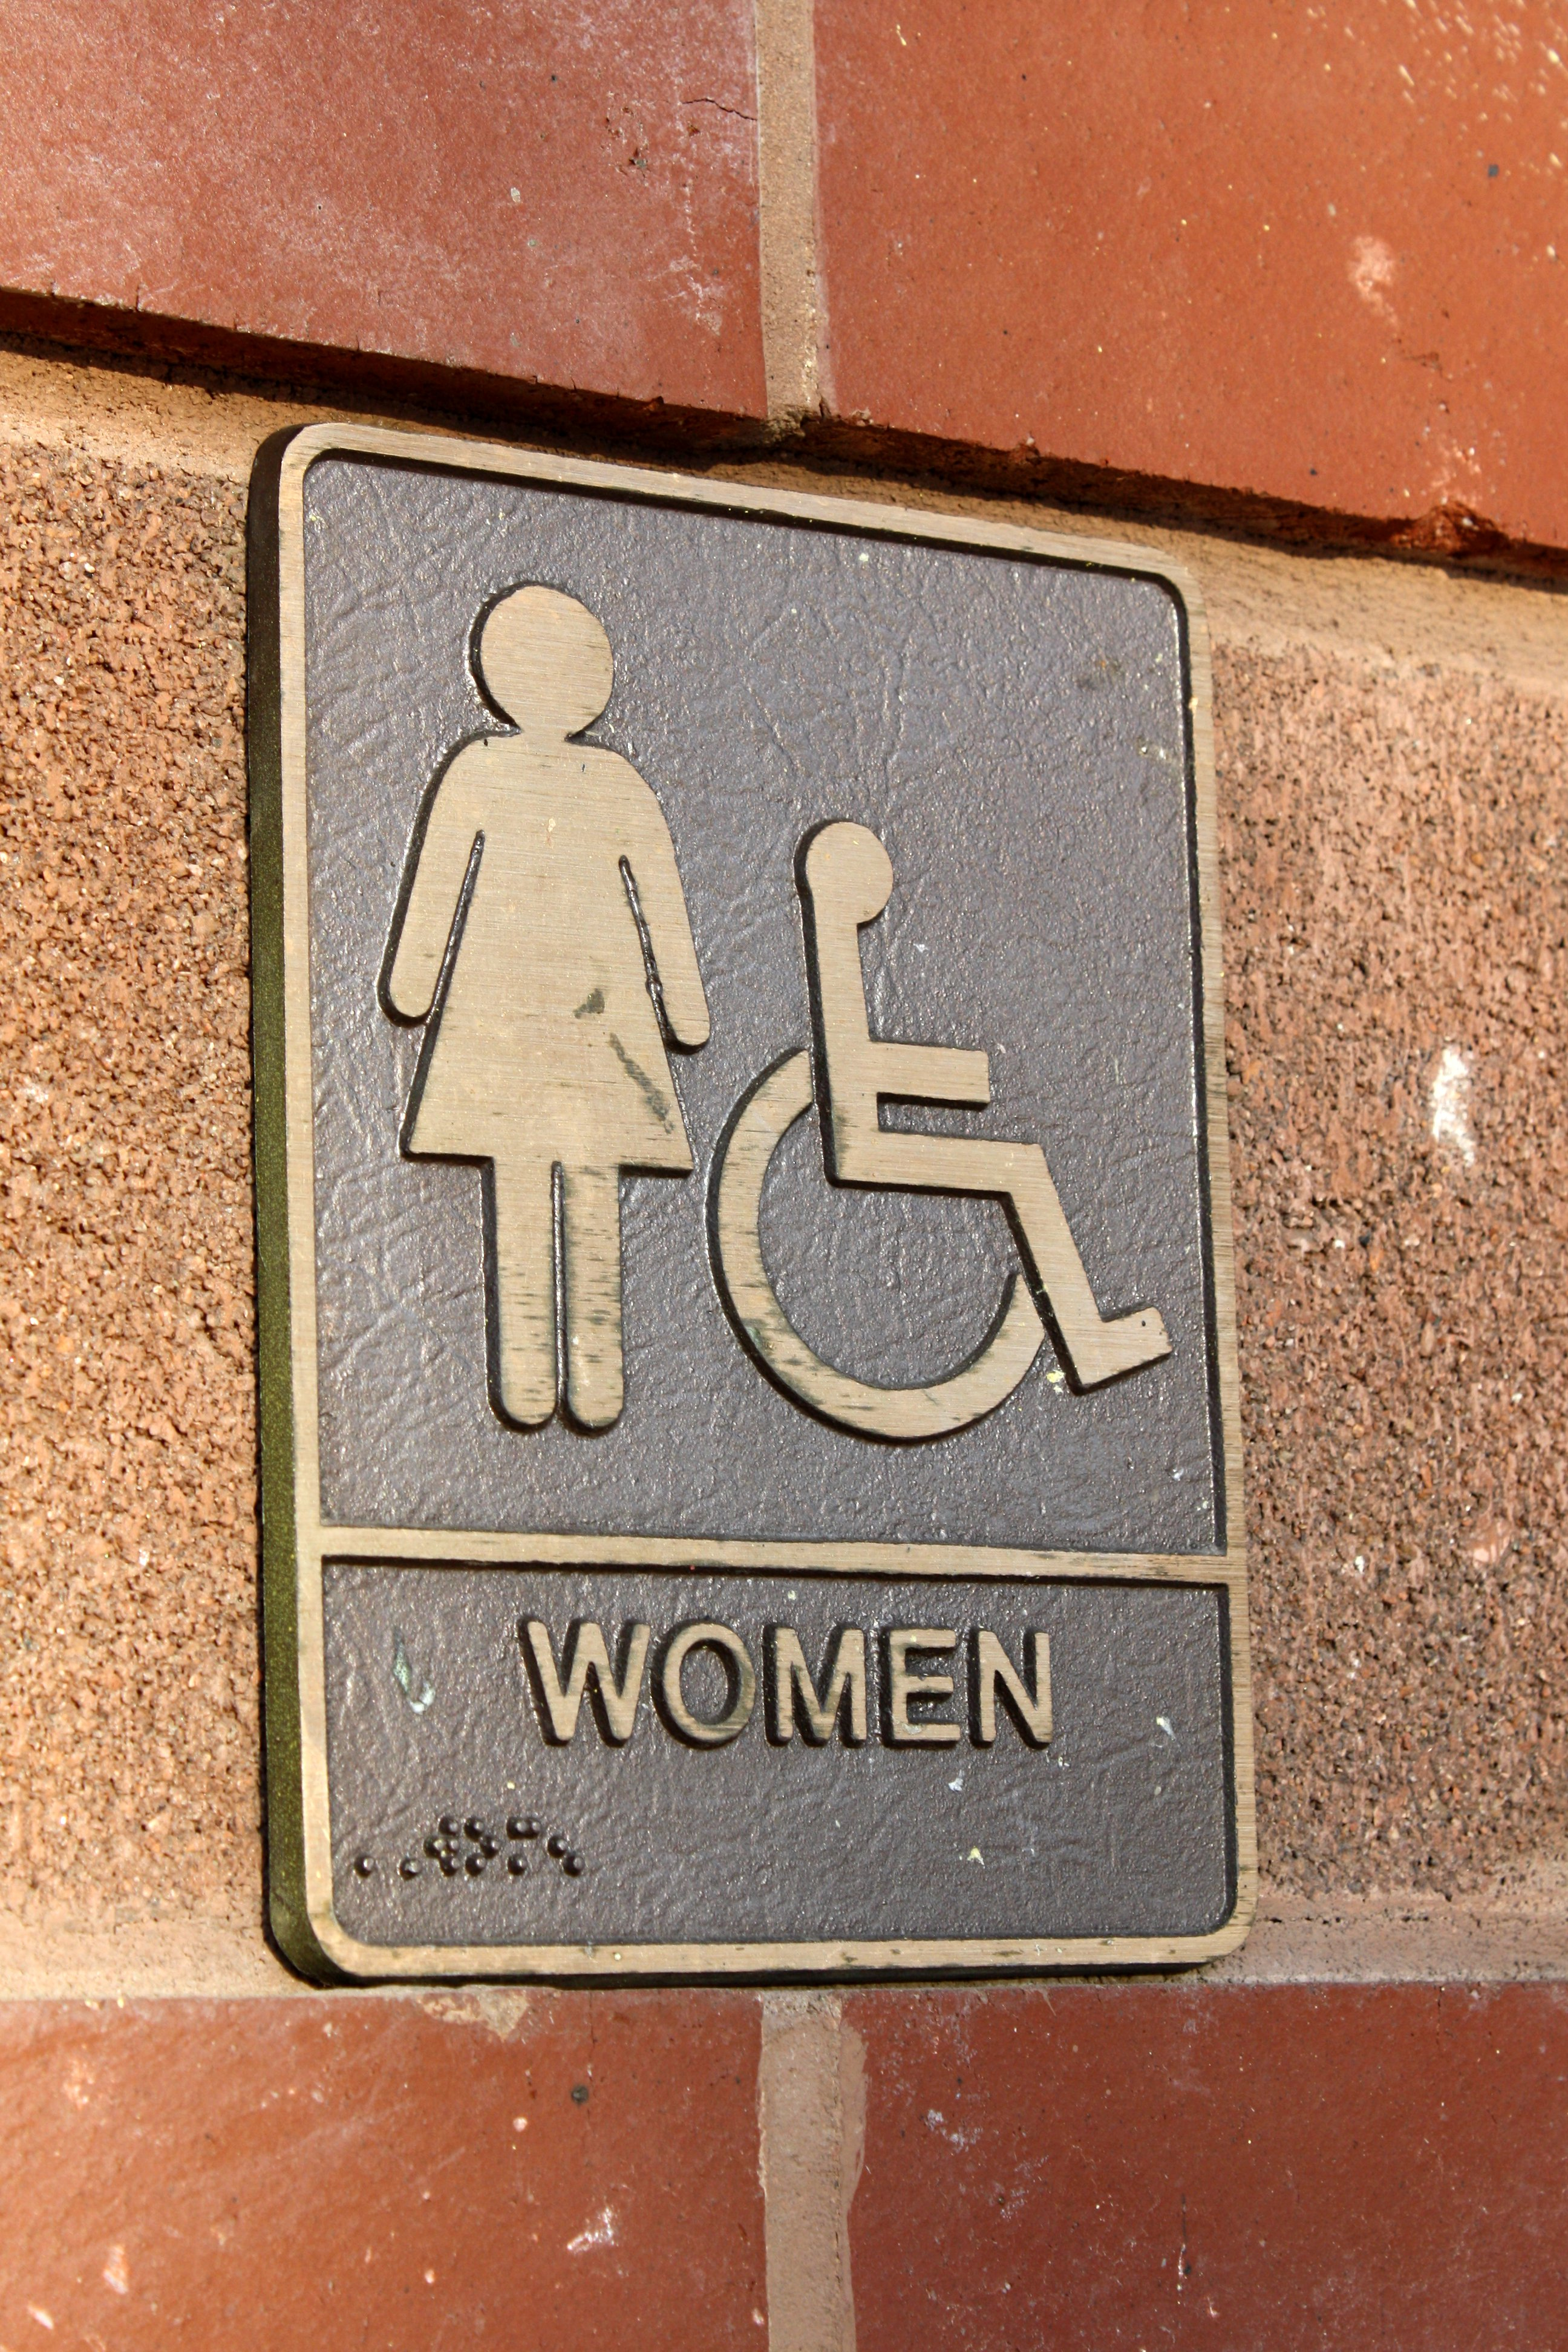 Bathroom Signs Commercial women's restroom sign brass plaque picture | free photograph